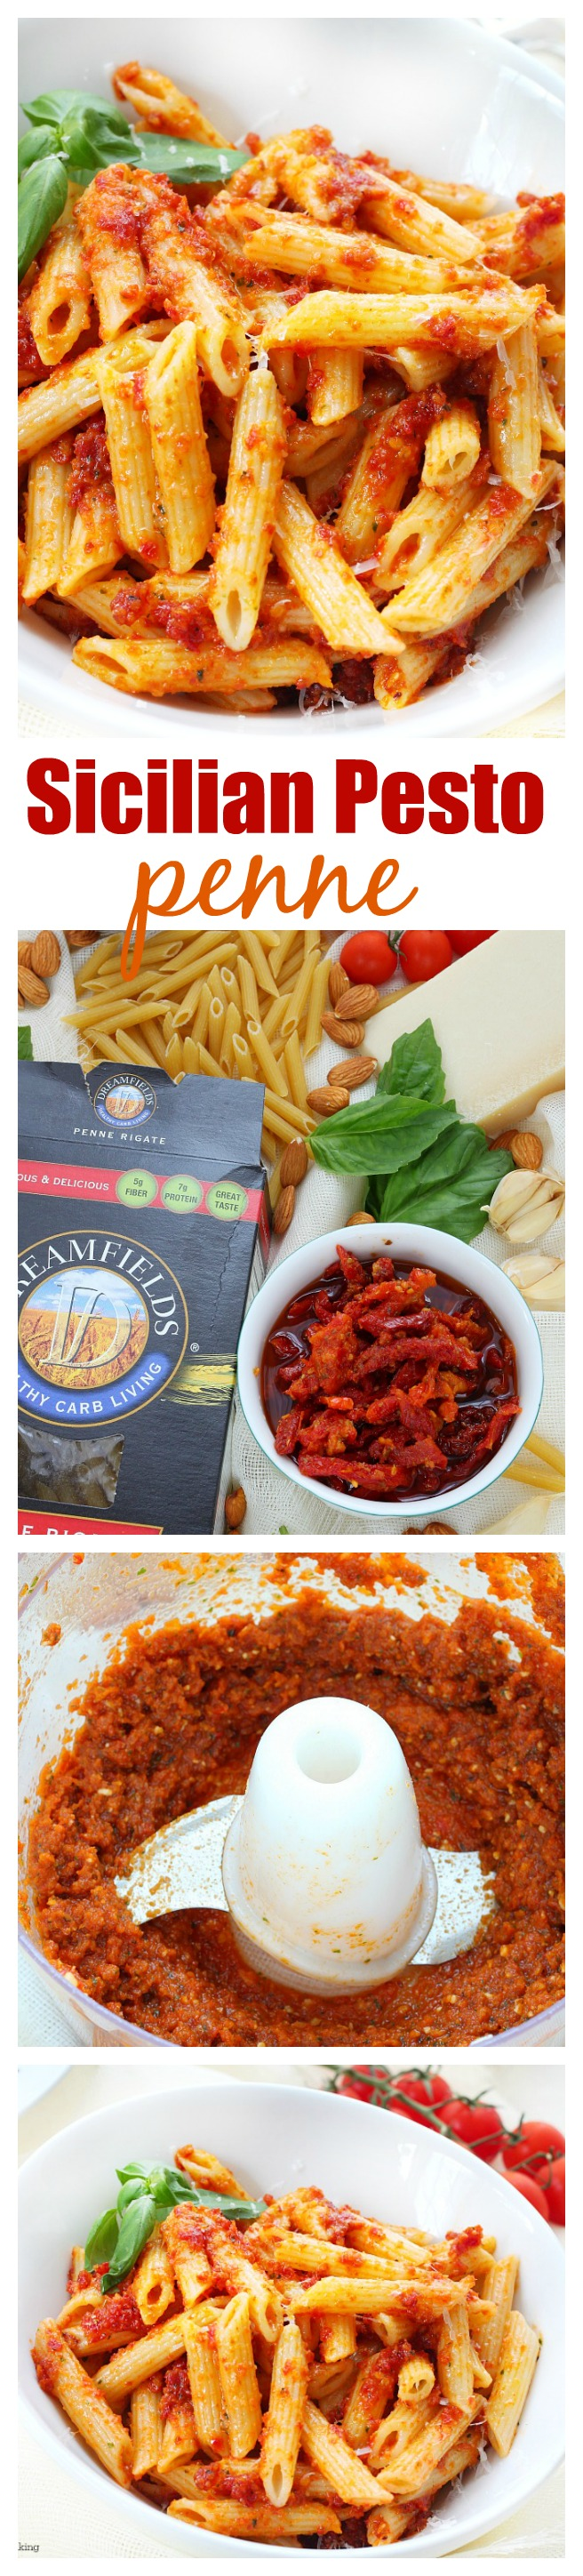 A super easy pasta dish made with the most flavorful sun dried tomato pesto! 6 ingredients and less than 15 minutes to make this delicious meal!